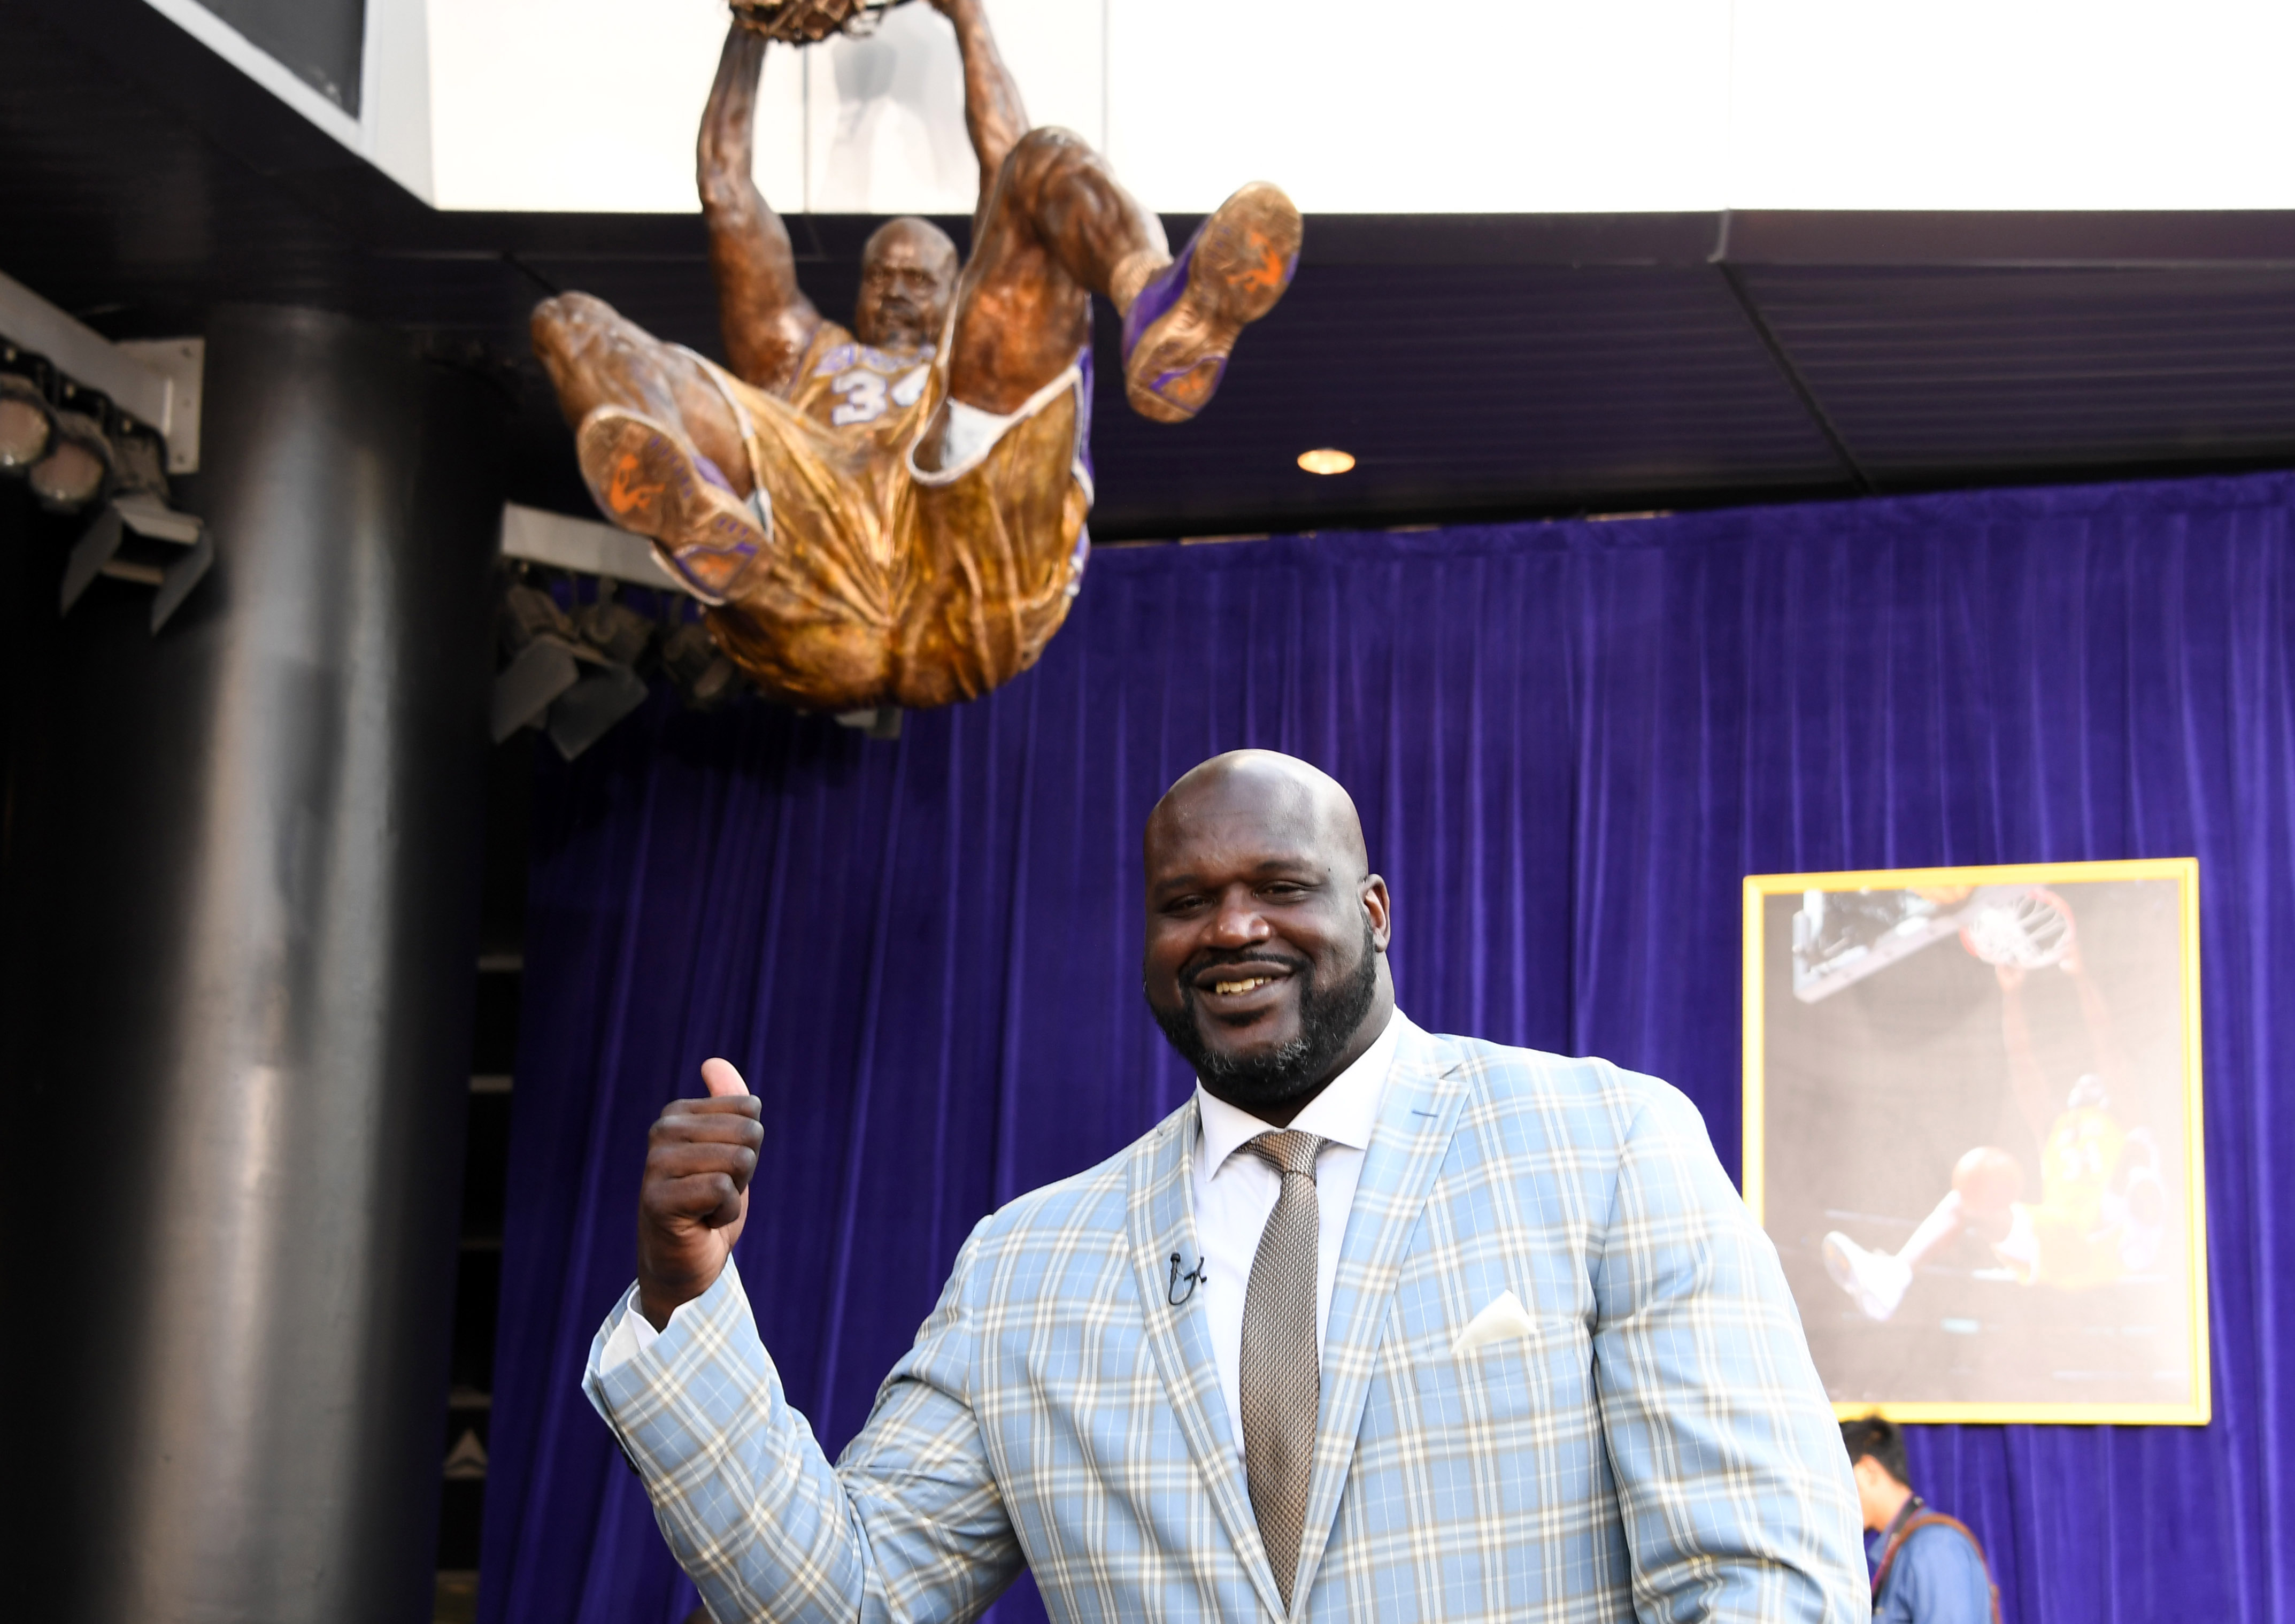 9968296-nba-shaquille-oneal-statue-unveiling